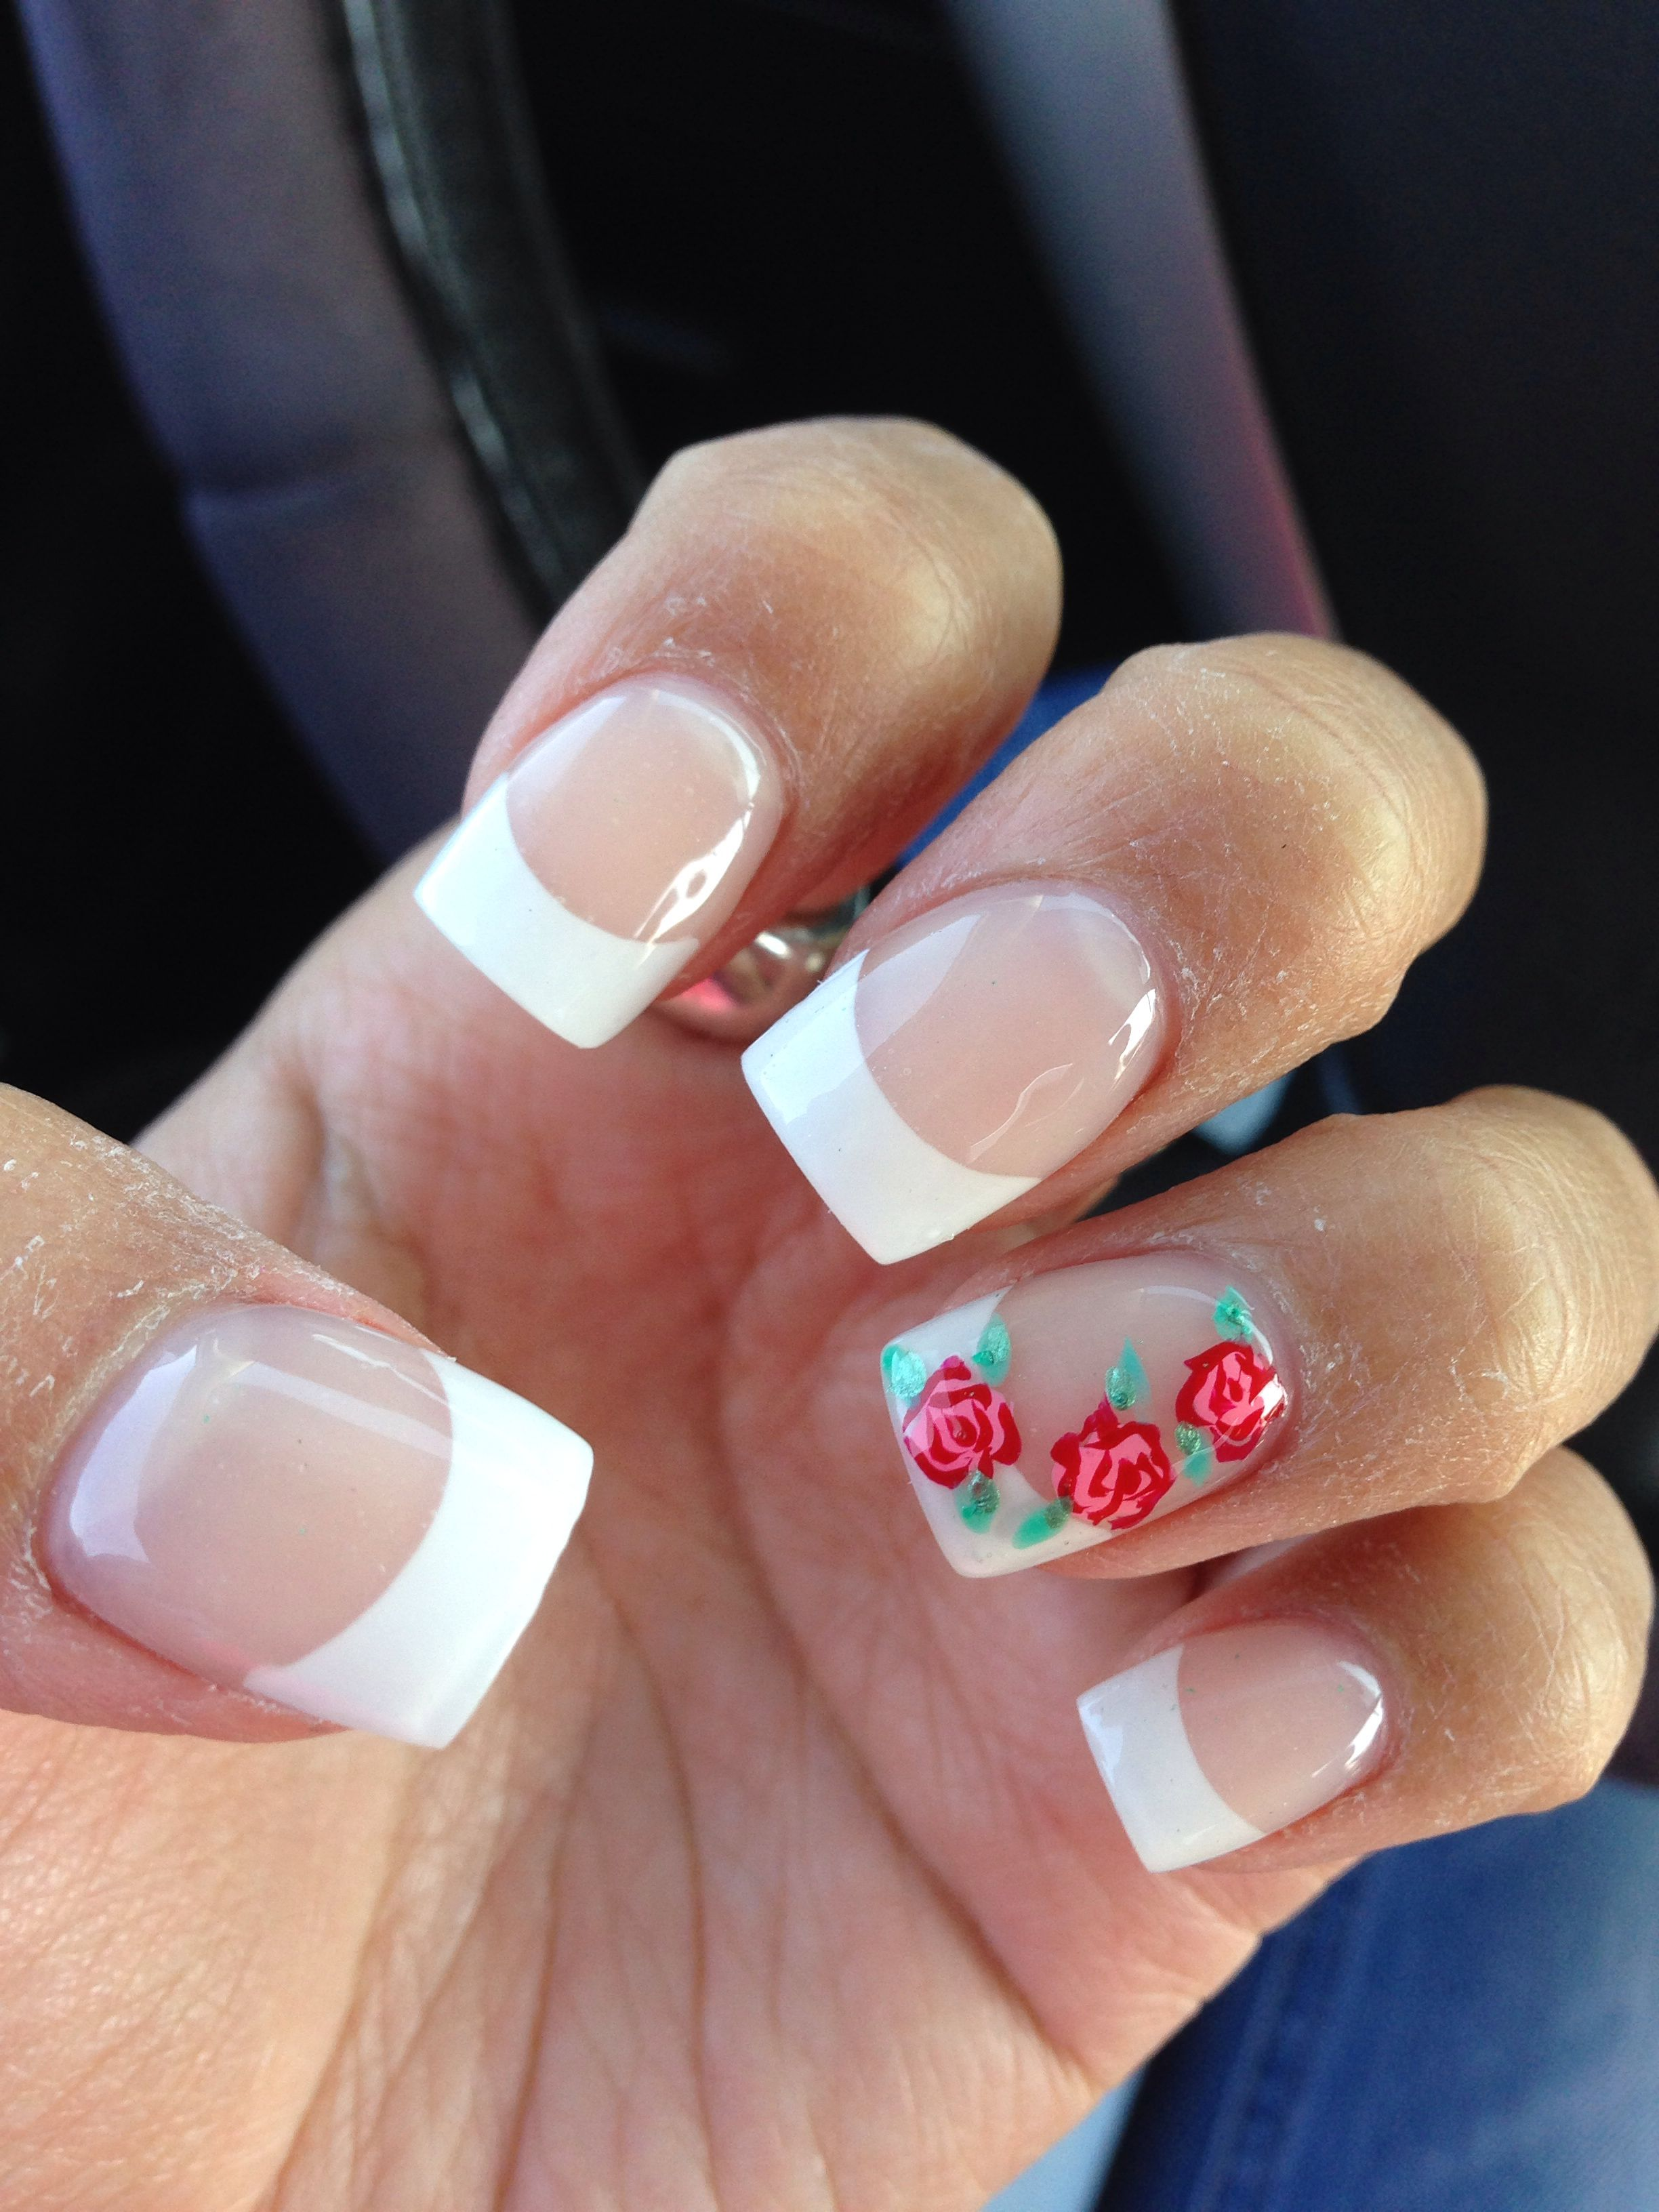 French Tip With Roses Design Rose Nails French Tip Acrylic Nails Rose Nail Art